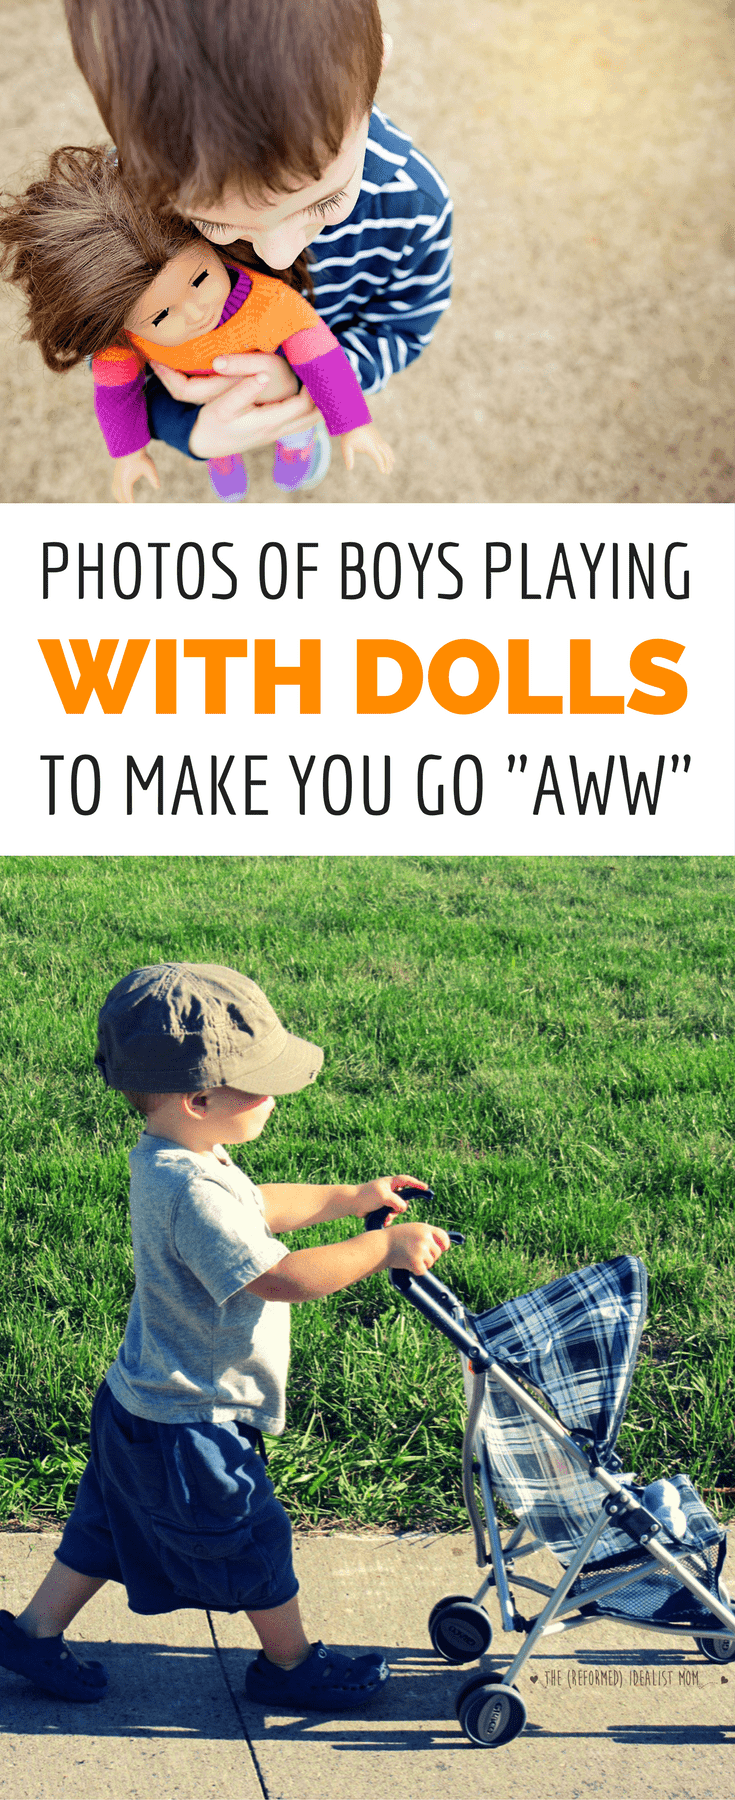 Get ready to smile big because these photos of boys playing with dolls will melt your heart! Boys who practice nurturing skills grow into caring husbands and fathers, so go ahead and give your son a doll. A doll is one of the BEST toys you can give your kid to foster healthy development of empathy, fine motor skills, and more. *This is perfect for boy moms and dads!